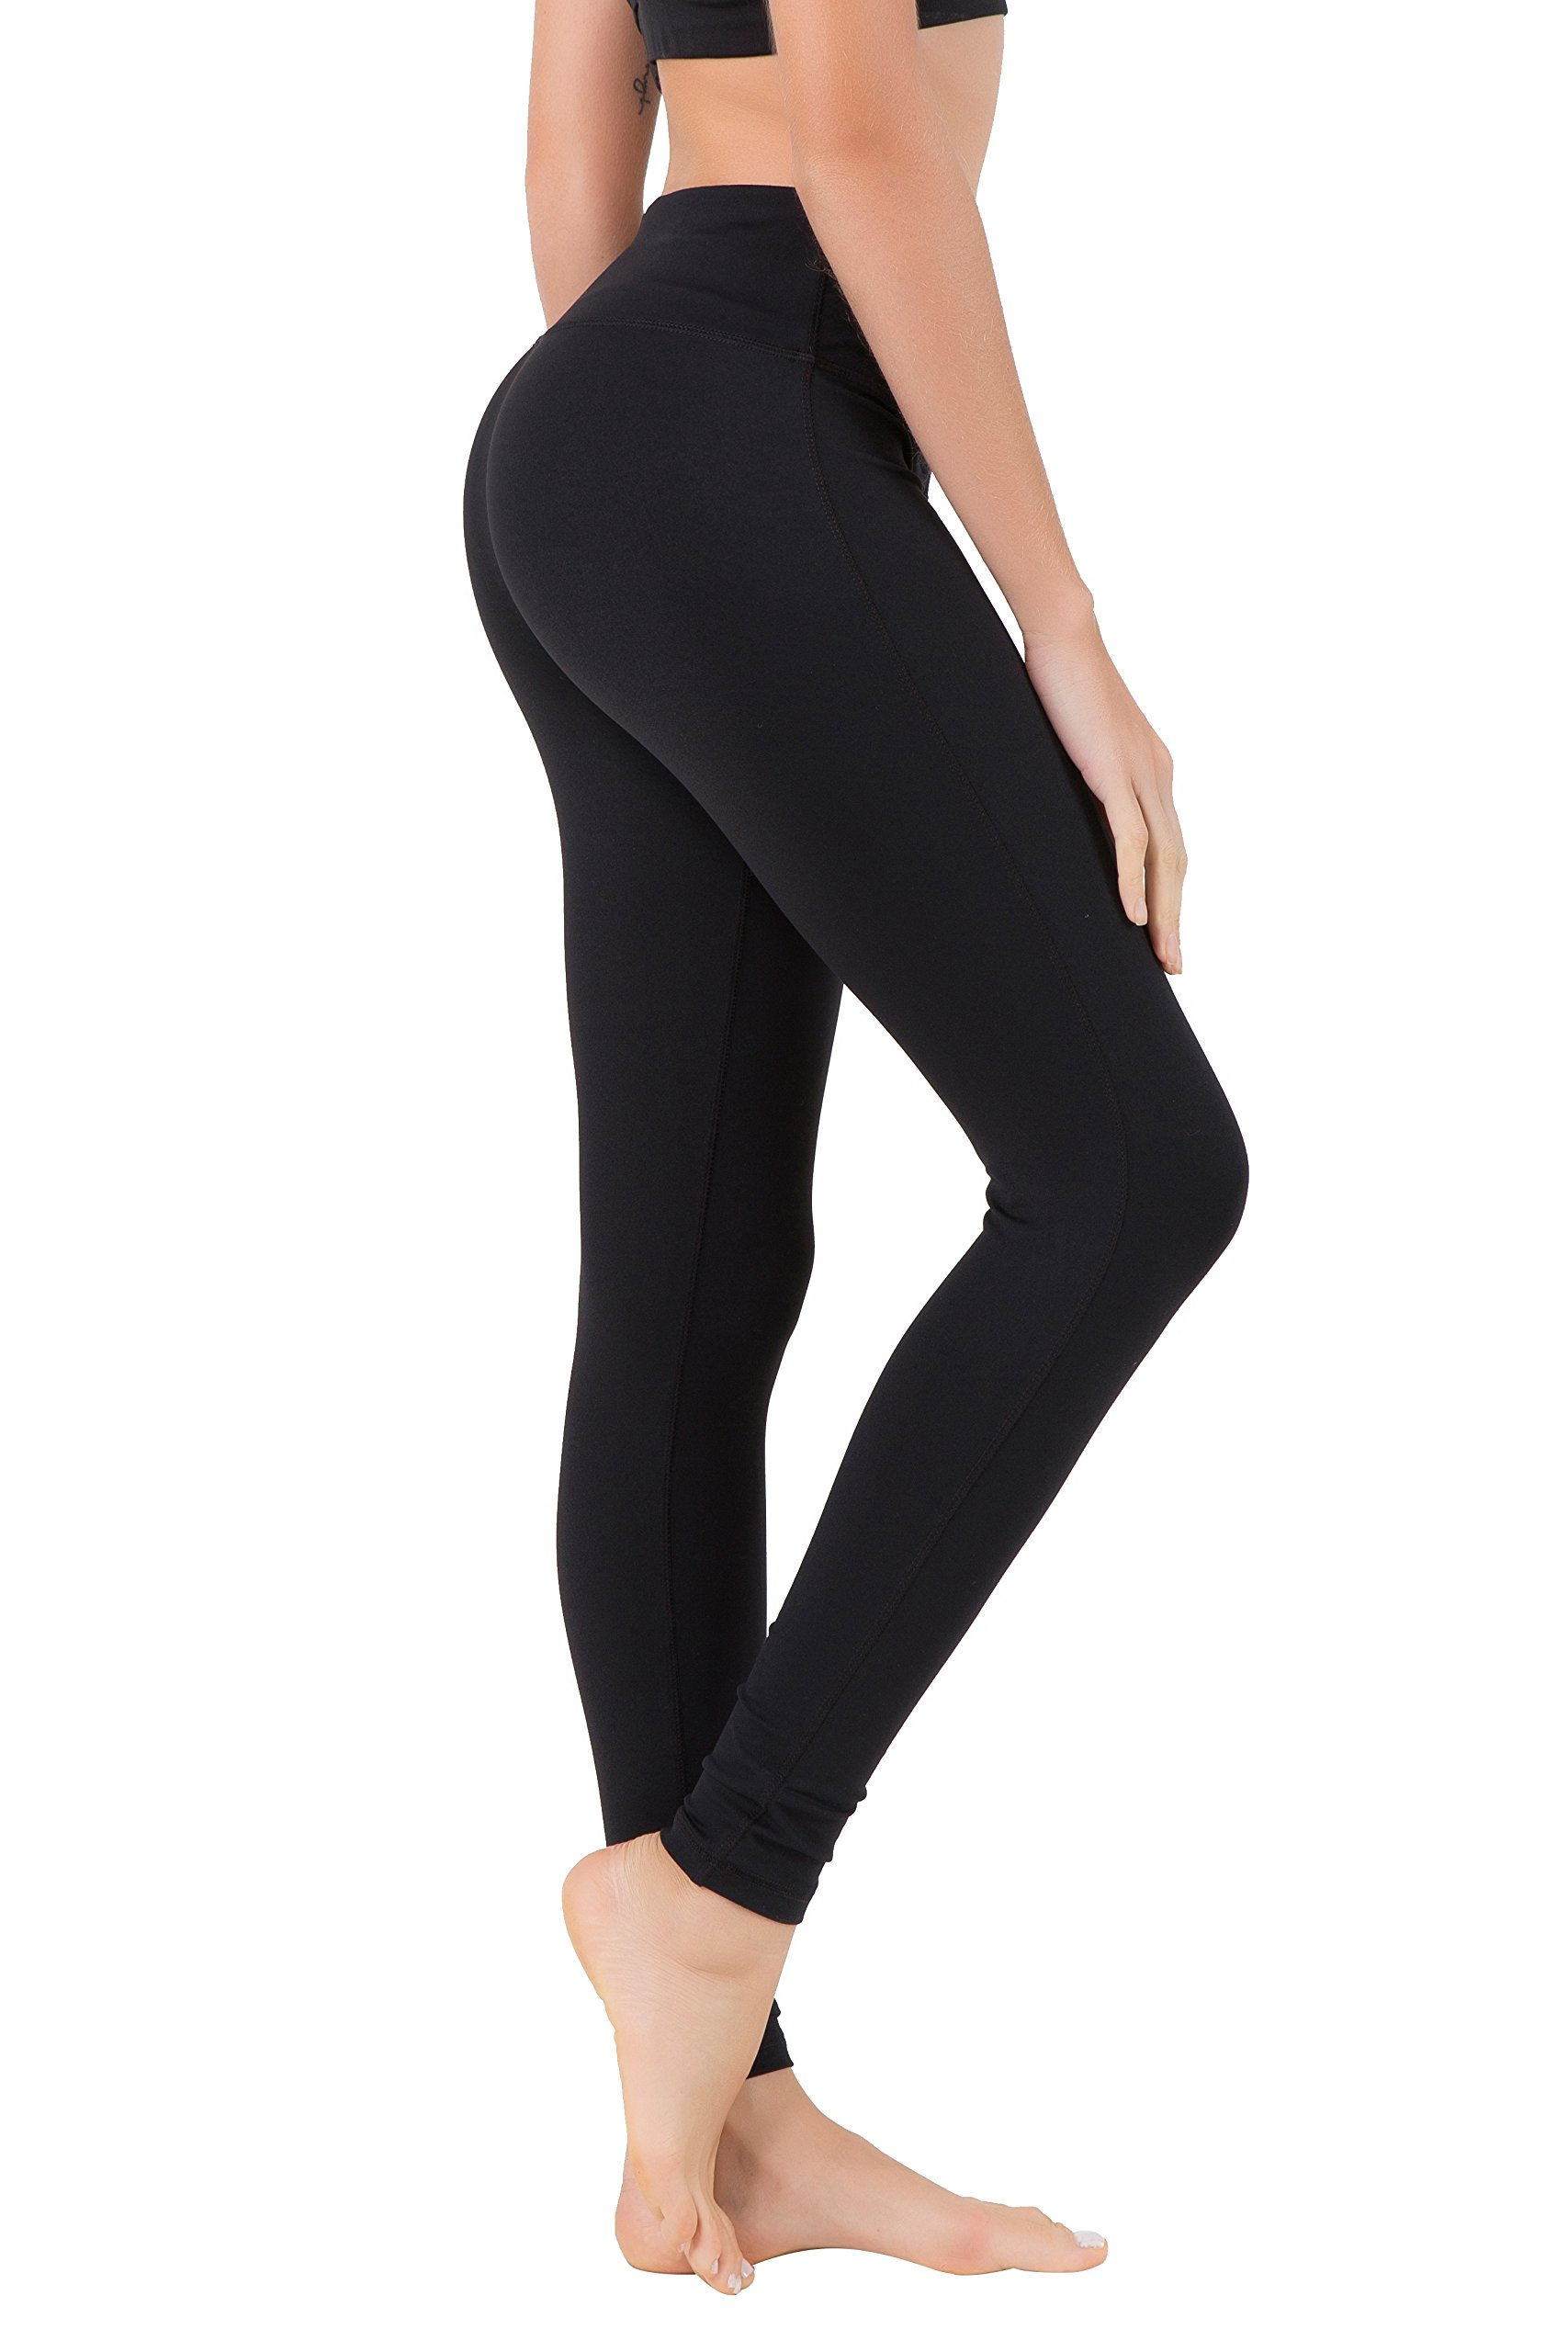 Queenie Ke Women Power Stretch Plus Size Mid-Waist Yoga Pants Running Tights Size XS Color Black with Underwear